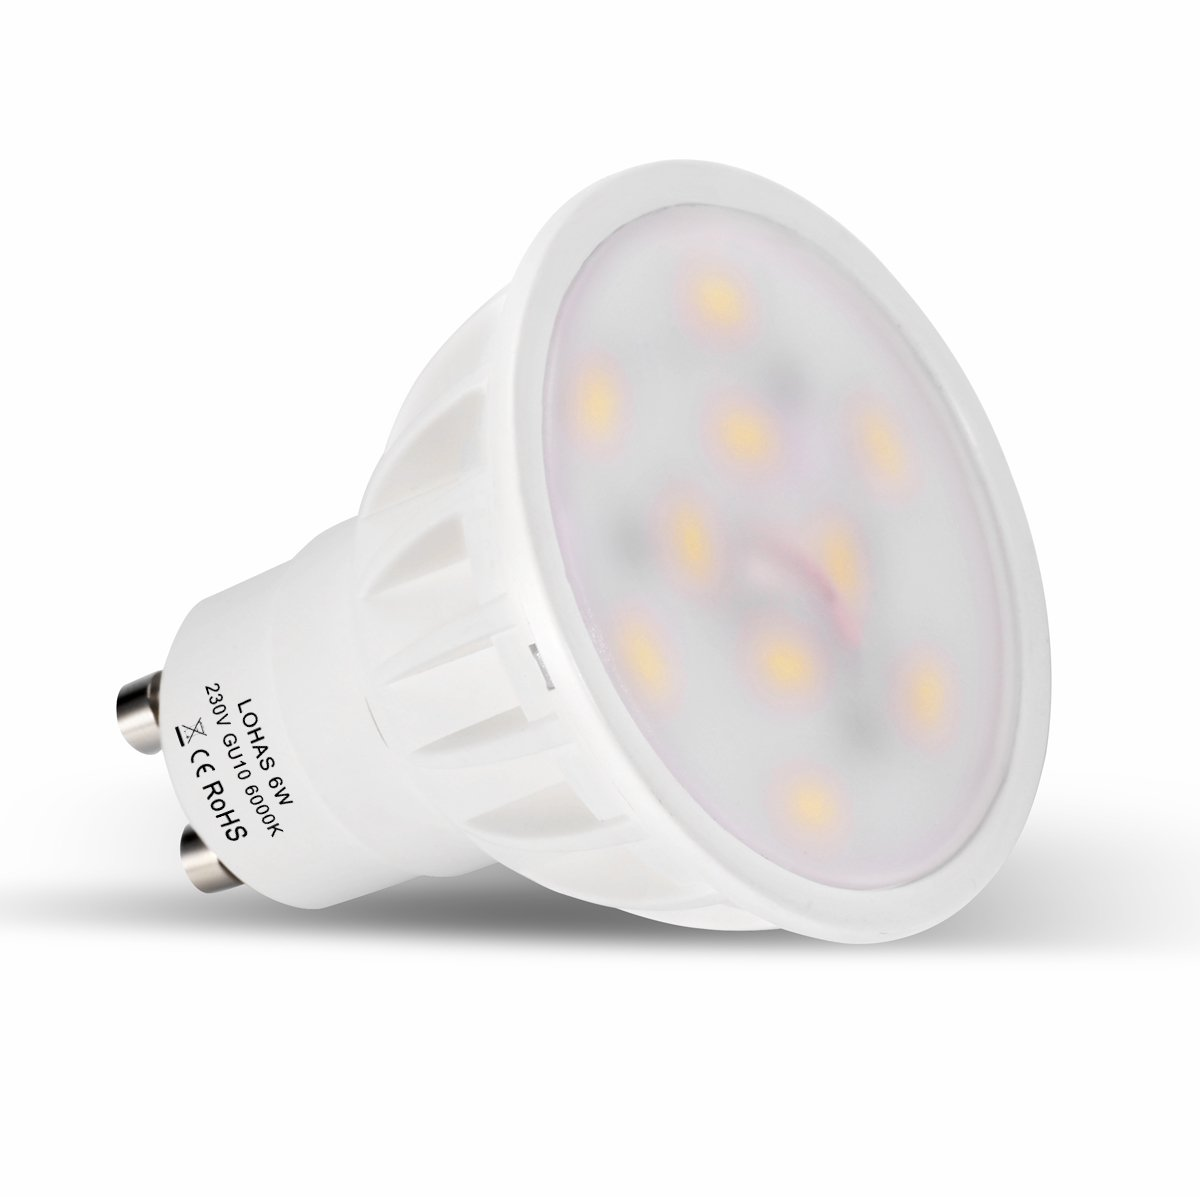 Lohas gu10 6watt led beautiful 6000k day white colour 50watt lohas gu10 6watt led beautiful 6000k day white colour 50watt replacement for halogen bulb with new chip technology with 1 year warranty5 packnon parisarafo Gallery